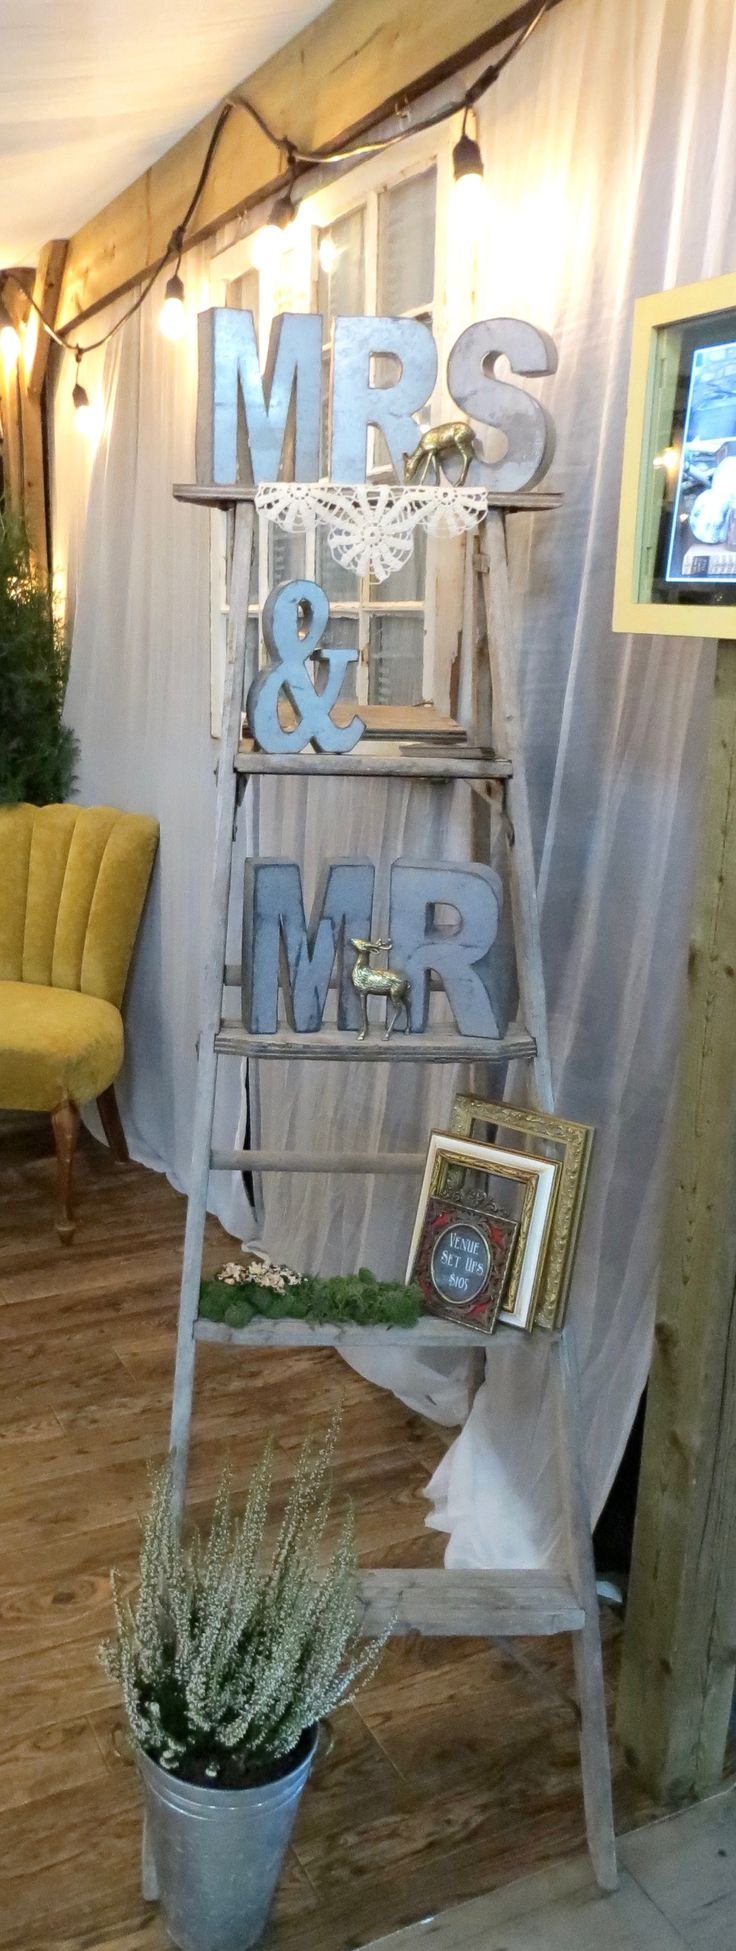 Mr & Mrs Letter on Antique Ladder